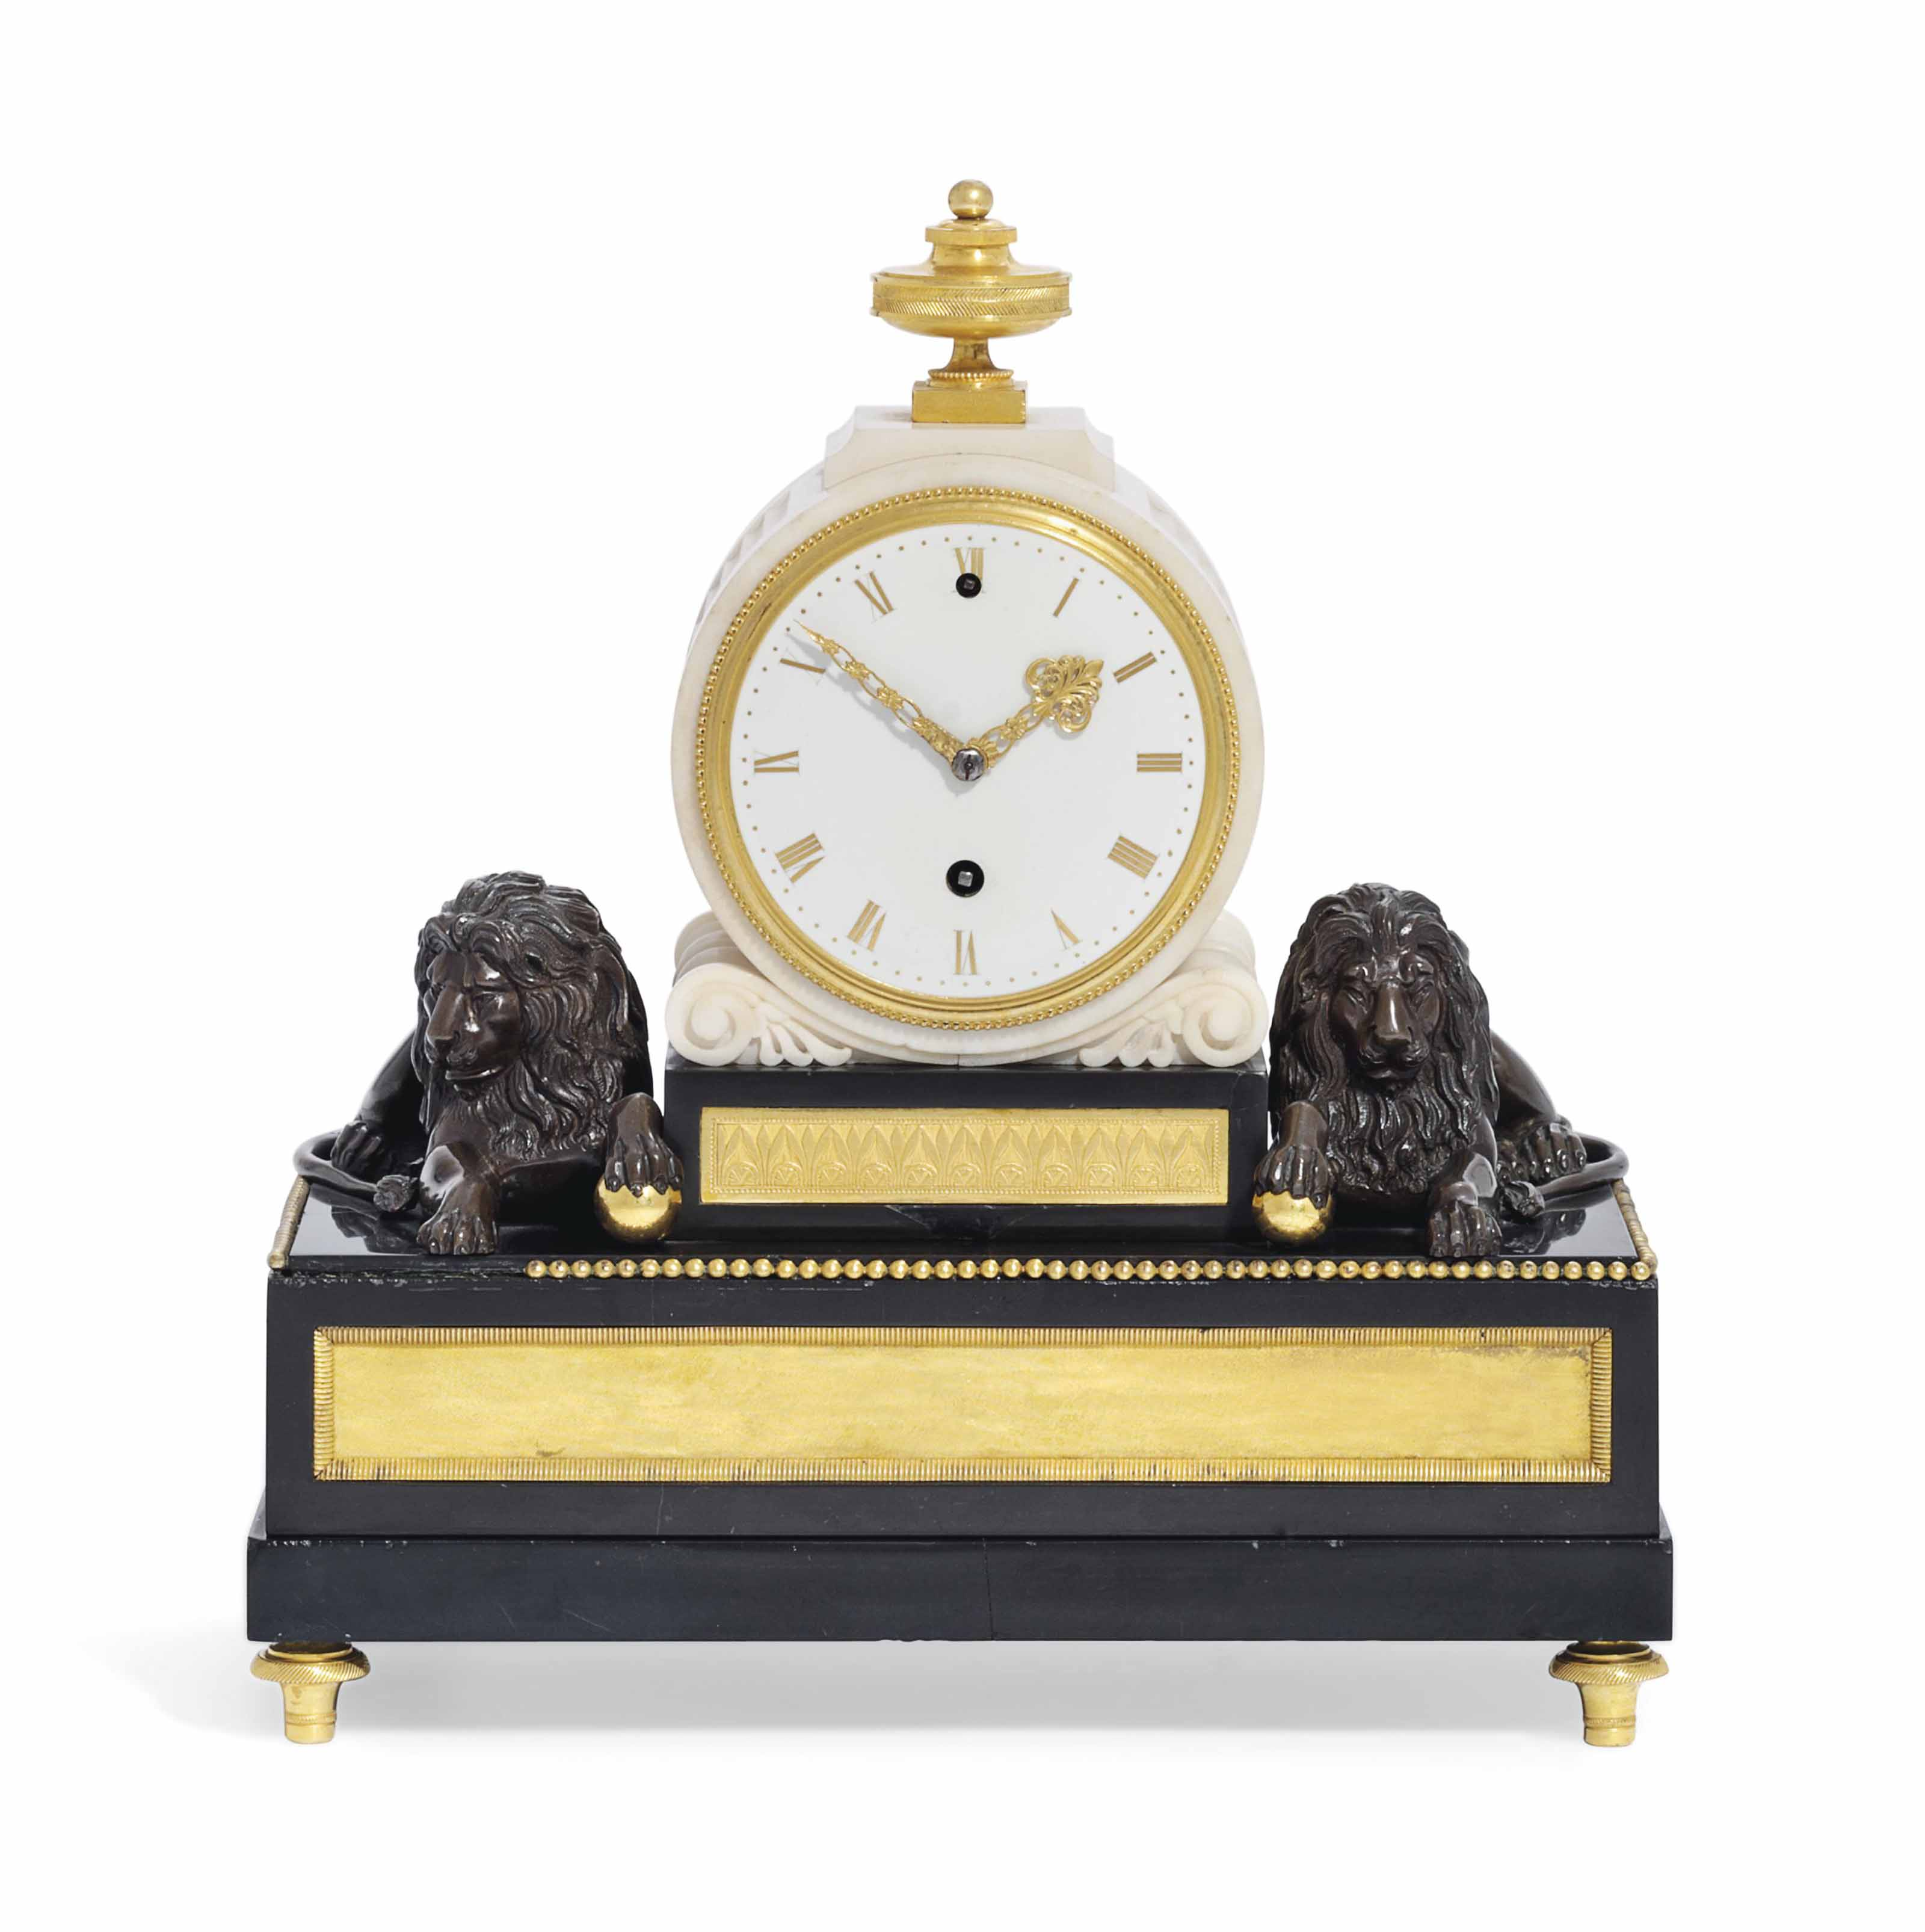 A GEORGE III ORMOLU-MOUNTED AND PATINATED BRONZE MARBLE MANTEL TIMEPIECE